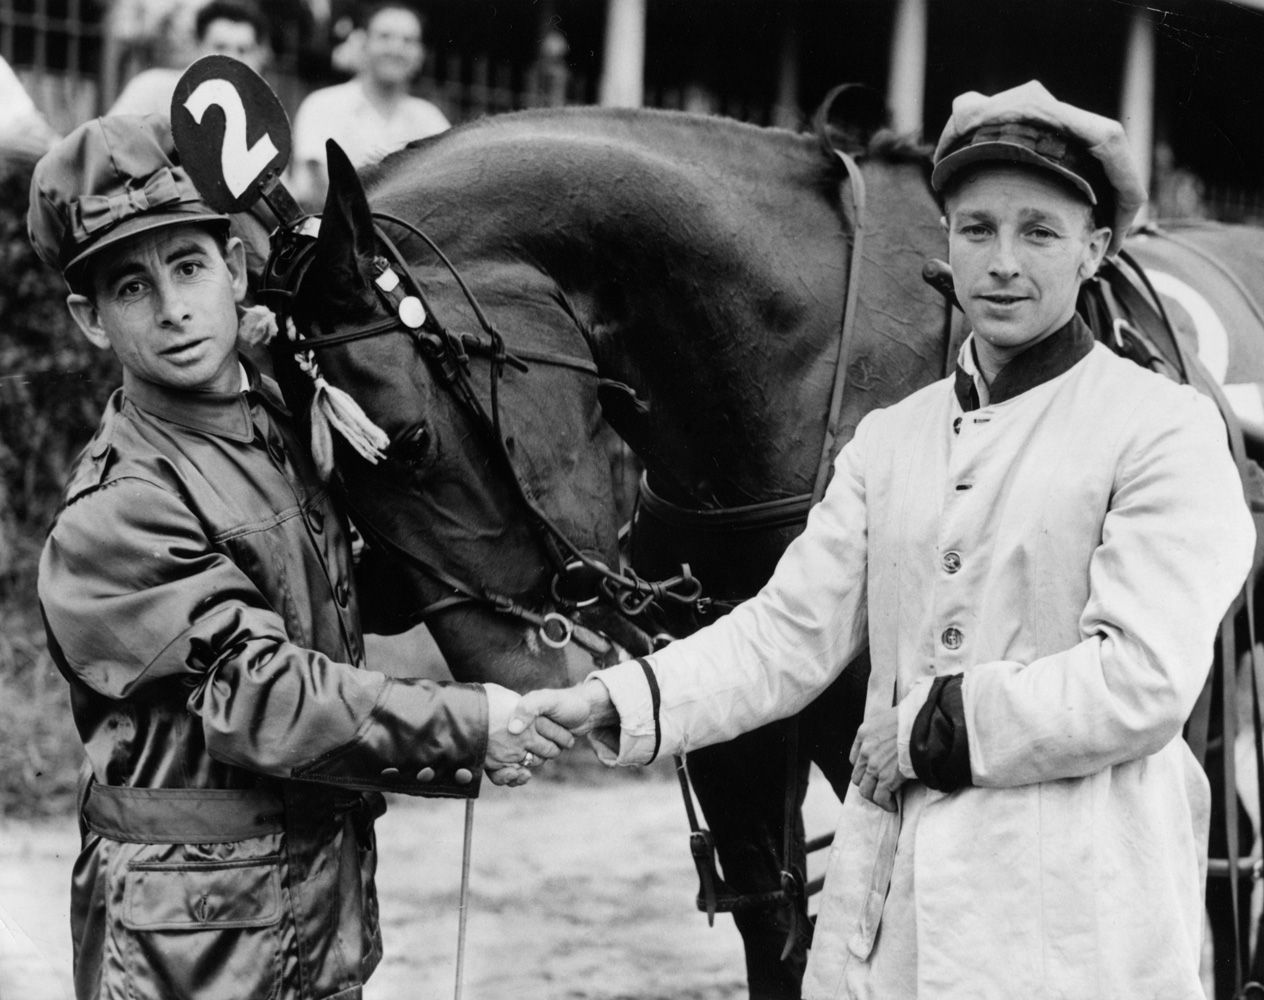 Johnny Longden and Wayne Wright shaking hands at an exhibition trotting race at Empire City in August 1943 (Acme Photo/Courtesy of Ken Grayson)